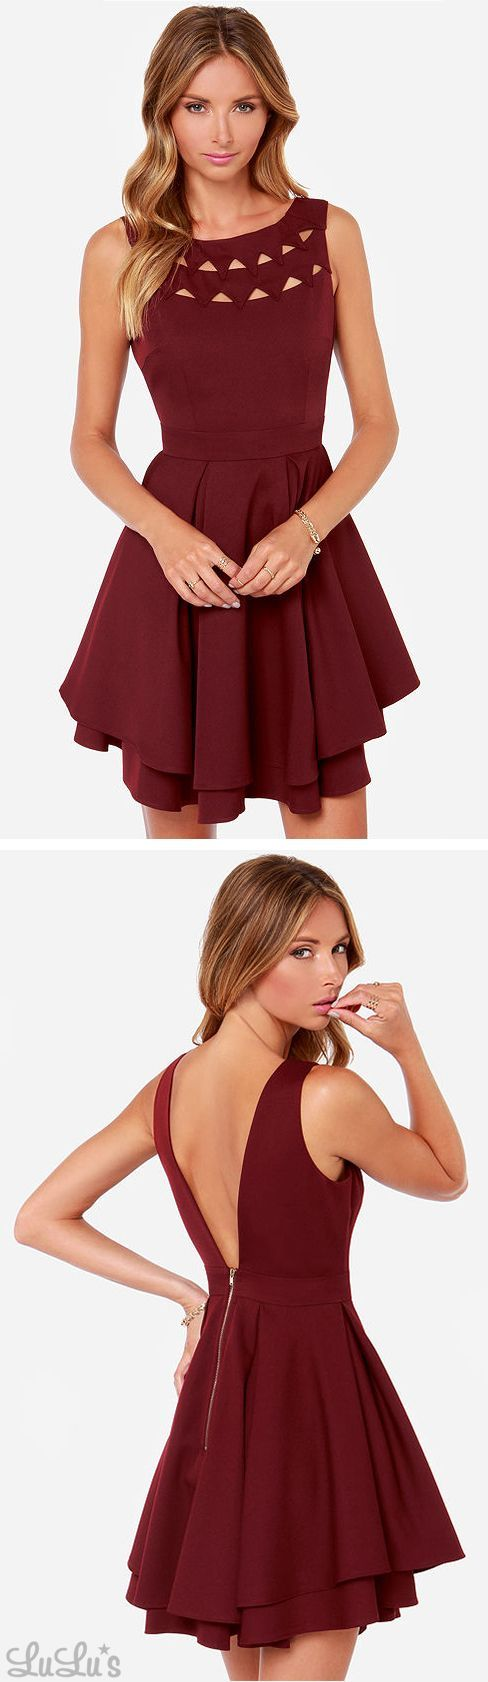 Dresses - LULUS Exclusive Flirting With Danger Cutout Burgundy Dress. But maybe a different color